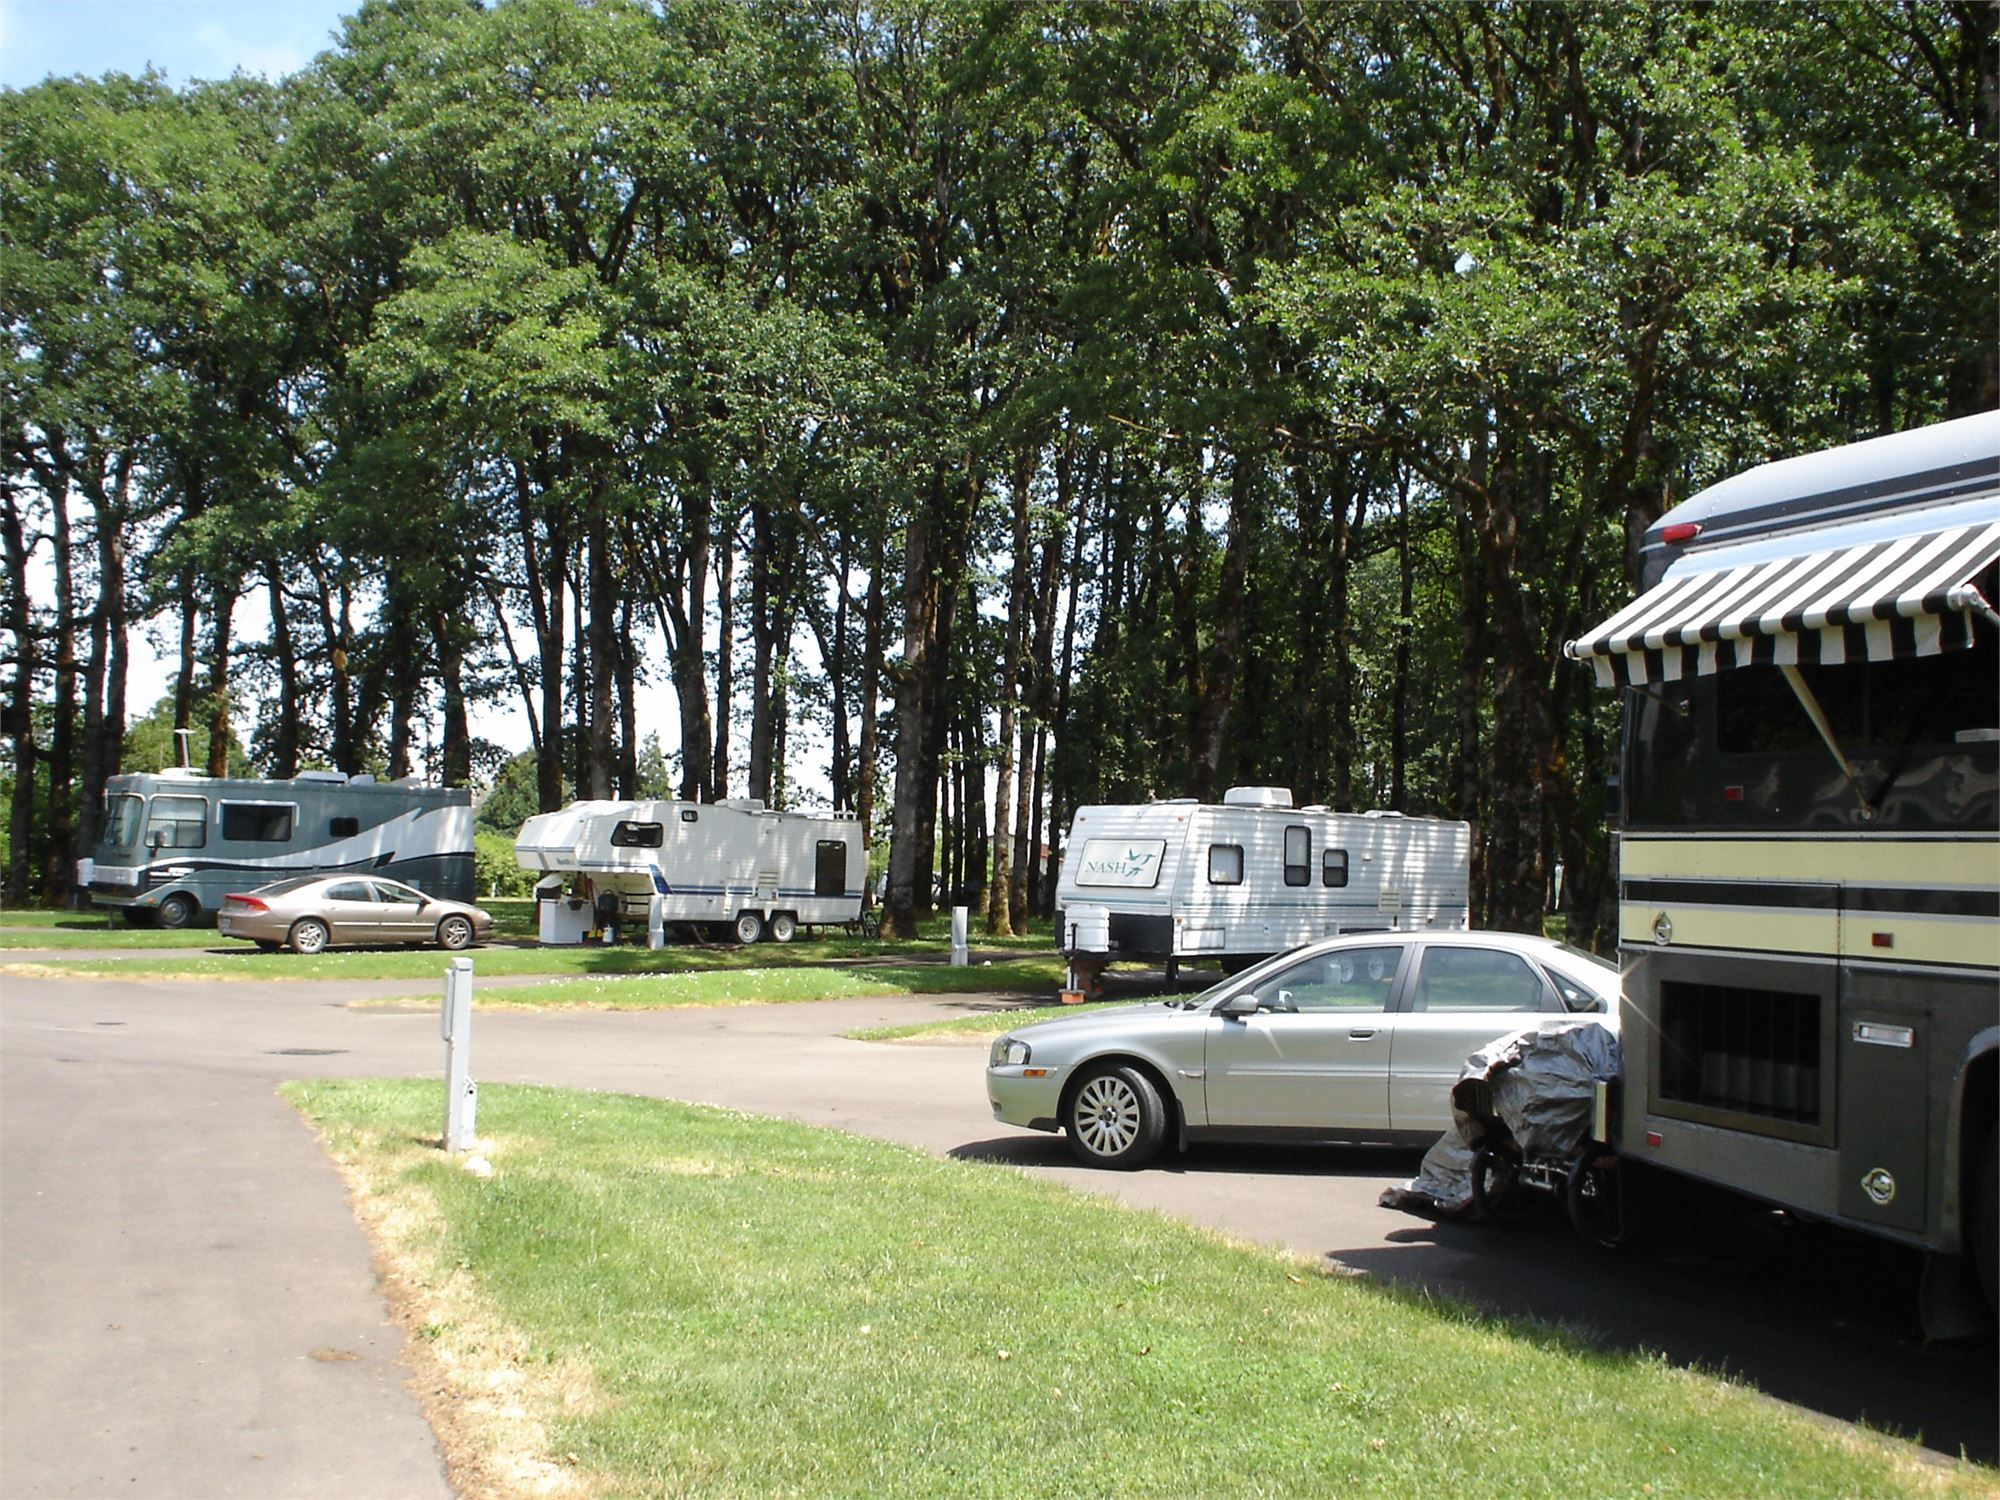 mobile home parks near tampa fl with Rodeo Mobile Home Rv Park on 4 Seasons Mobile Home Park Rv Resort likewise Orlando Florida Map together with Angel with fireman further G 6l4tfhd12e061n7lqhqmca0 likewise Modular Homes Ruskin Florida.